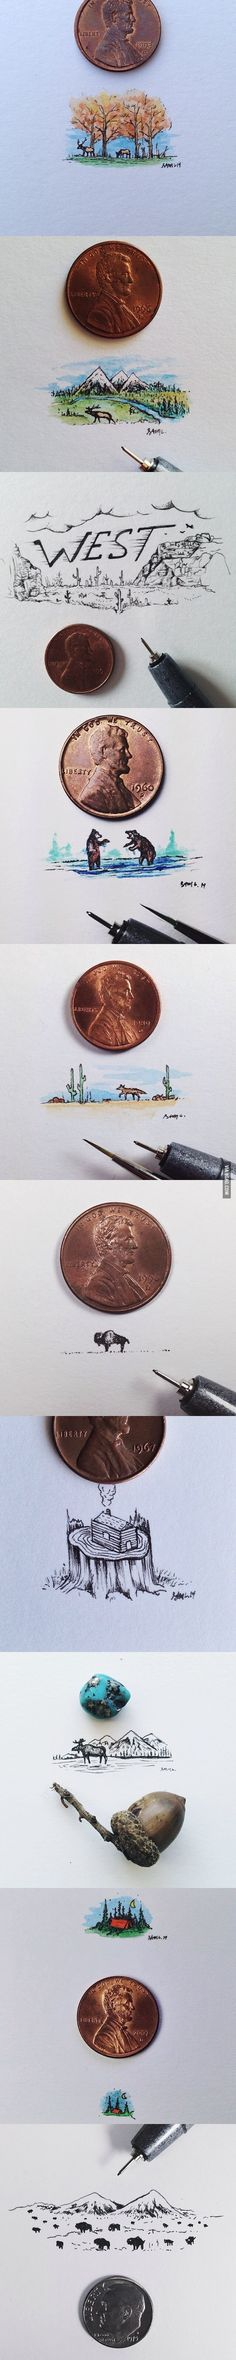 These tiny illustrations are the size of a penny, but they are full of beautiful detail